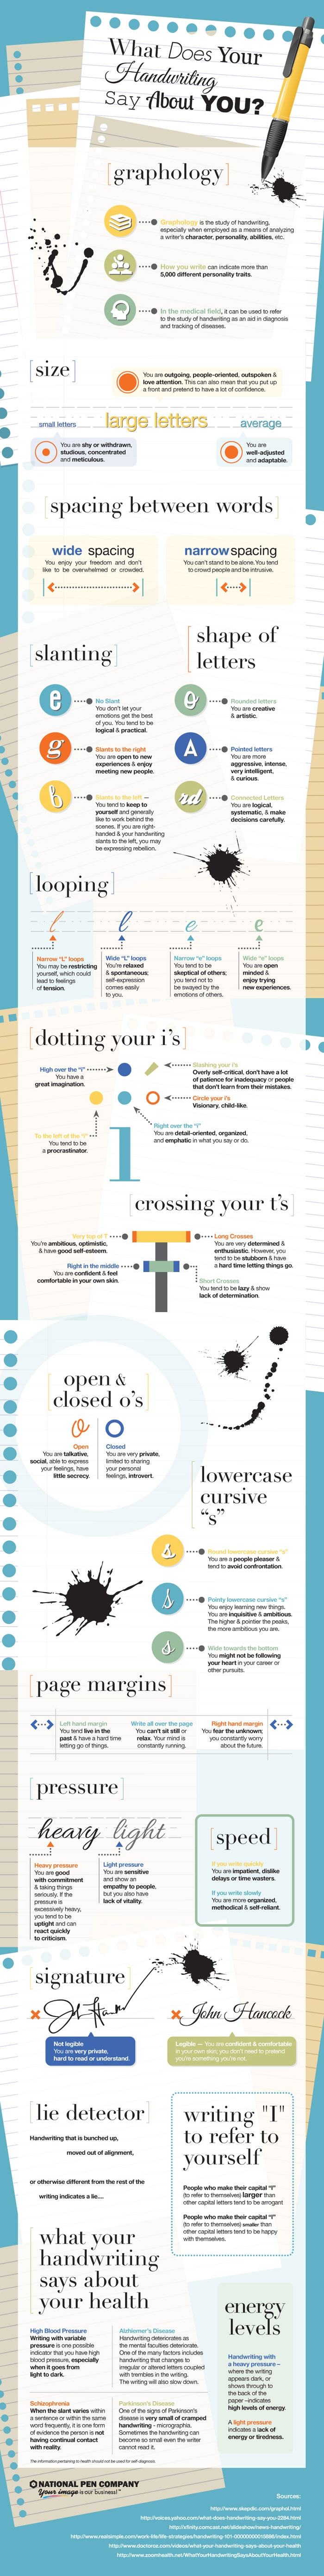 What Does Your Handwriting Say About You? #infographic